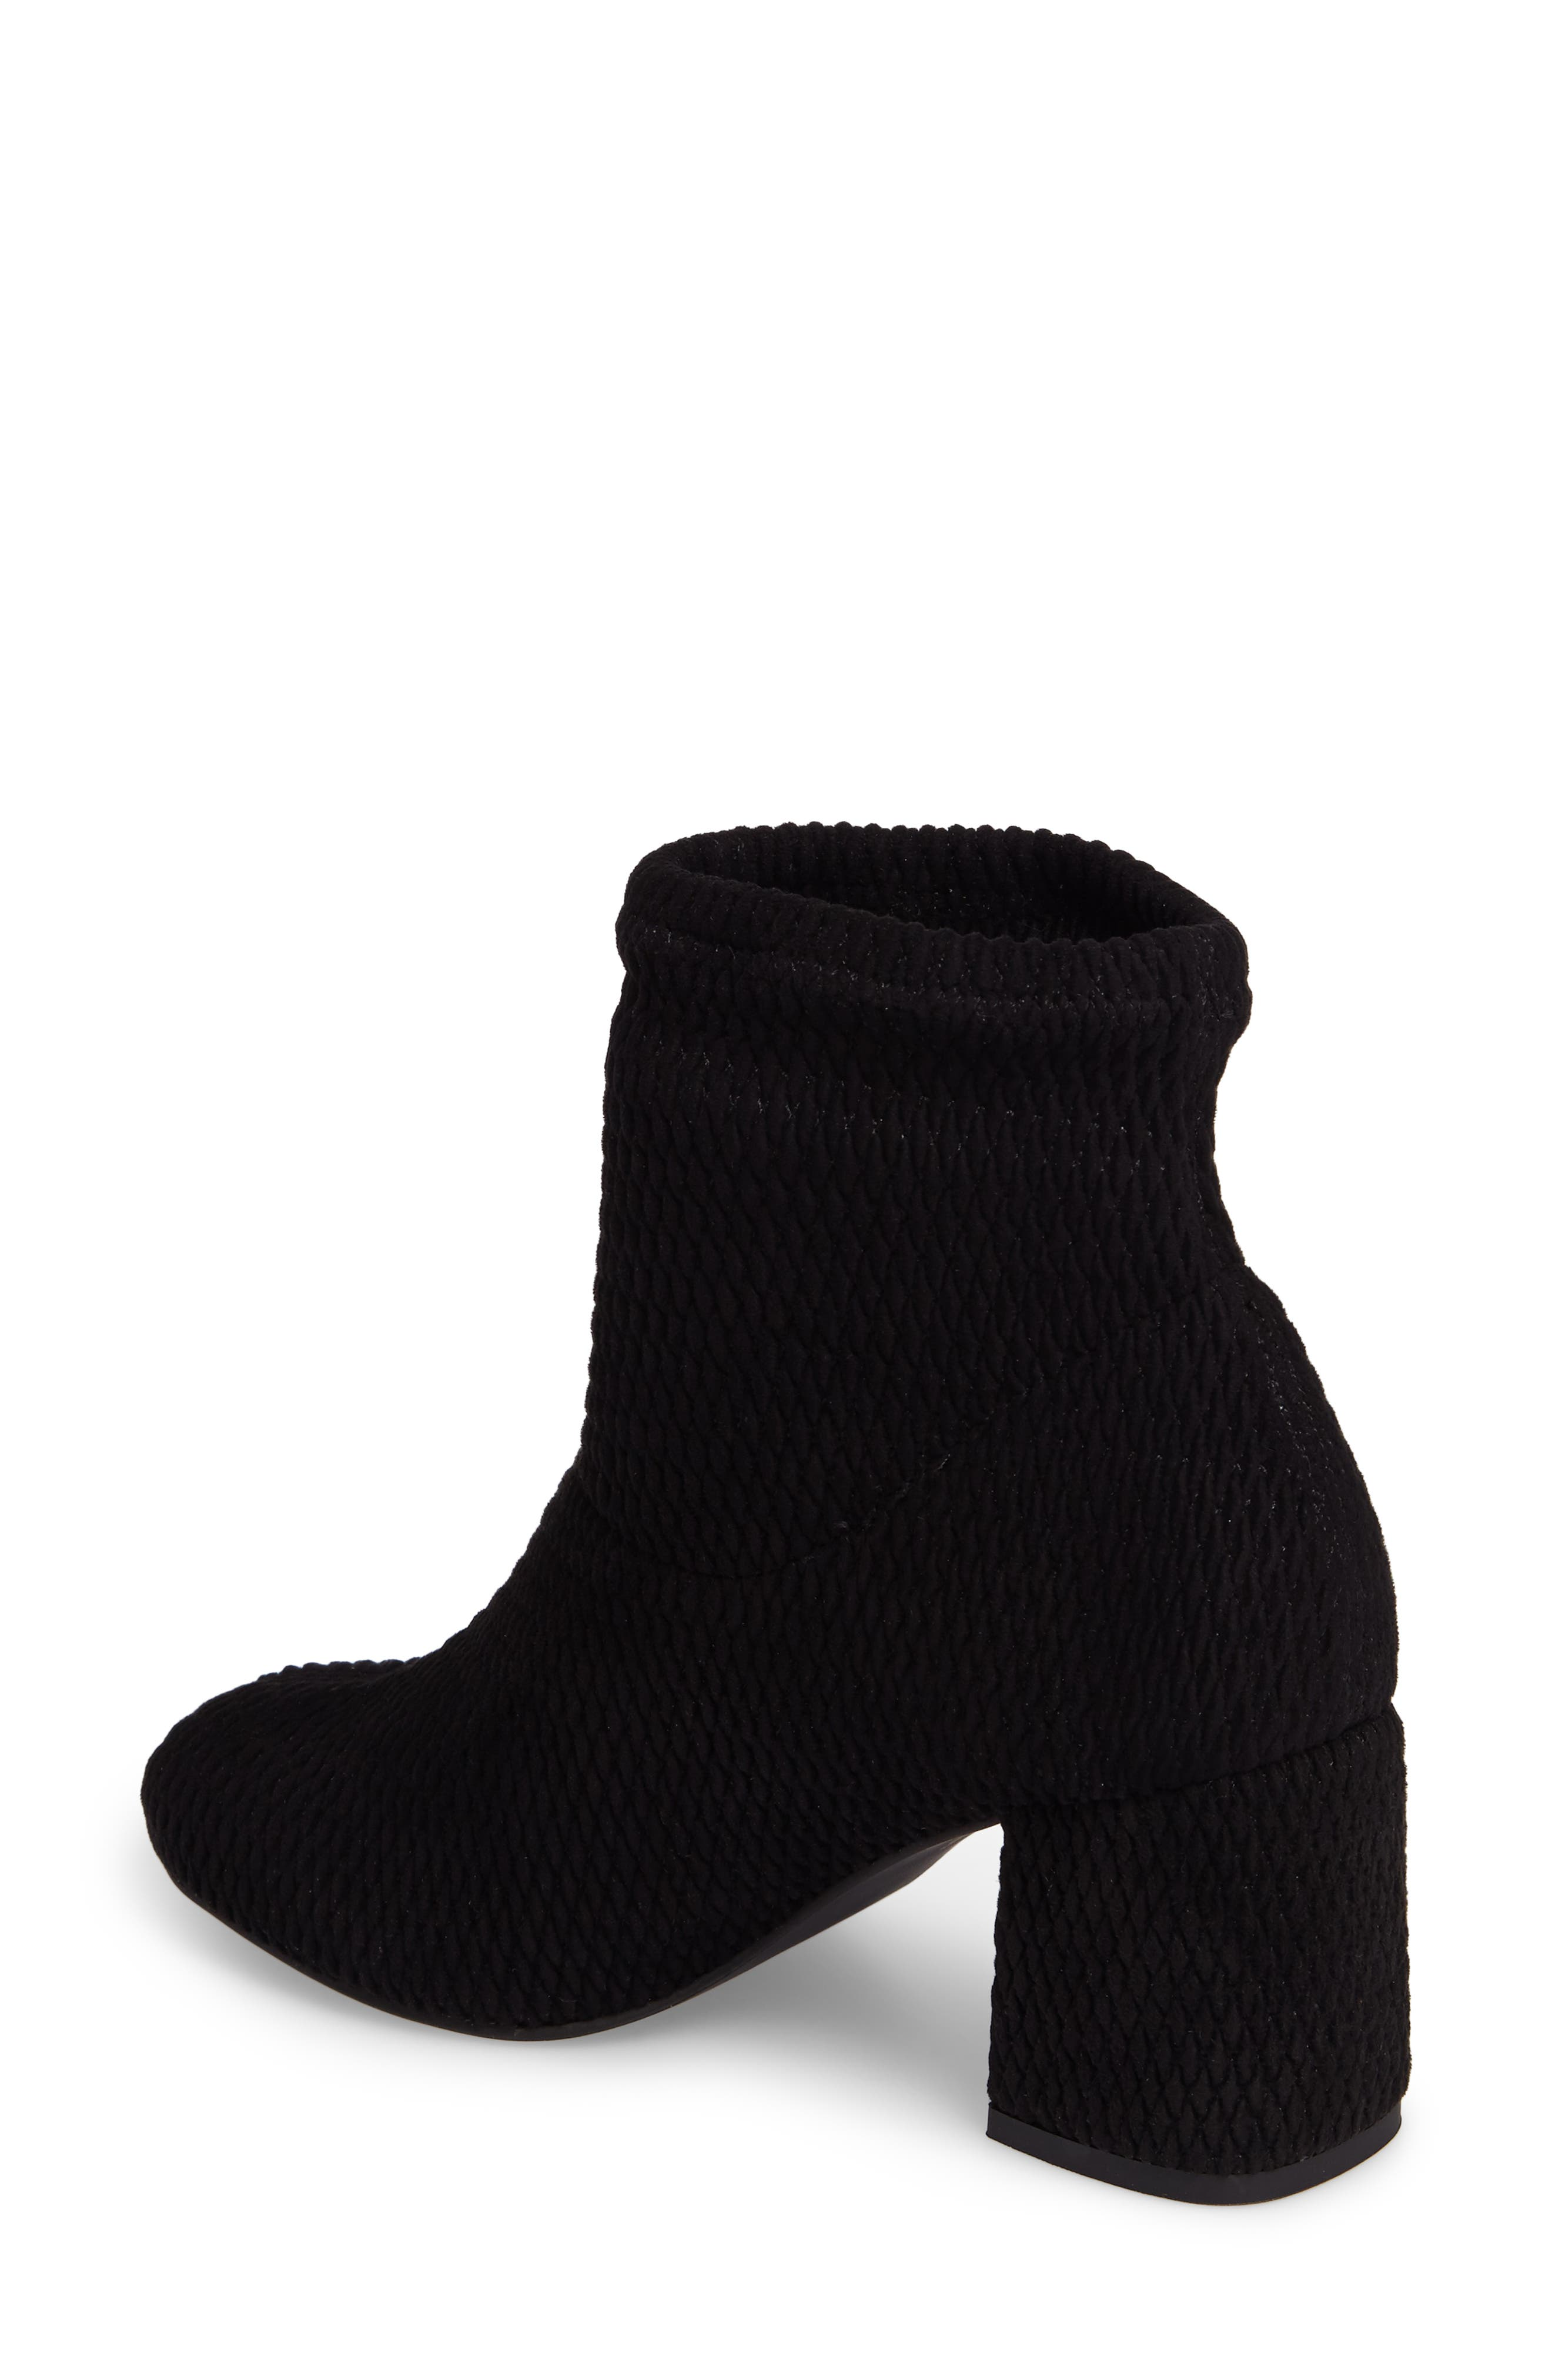 Ad Lib Sock Bootie,                             Alternate thumbnail 2, color,                             001